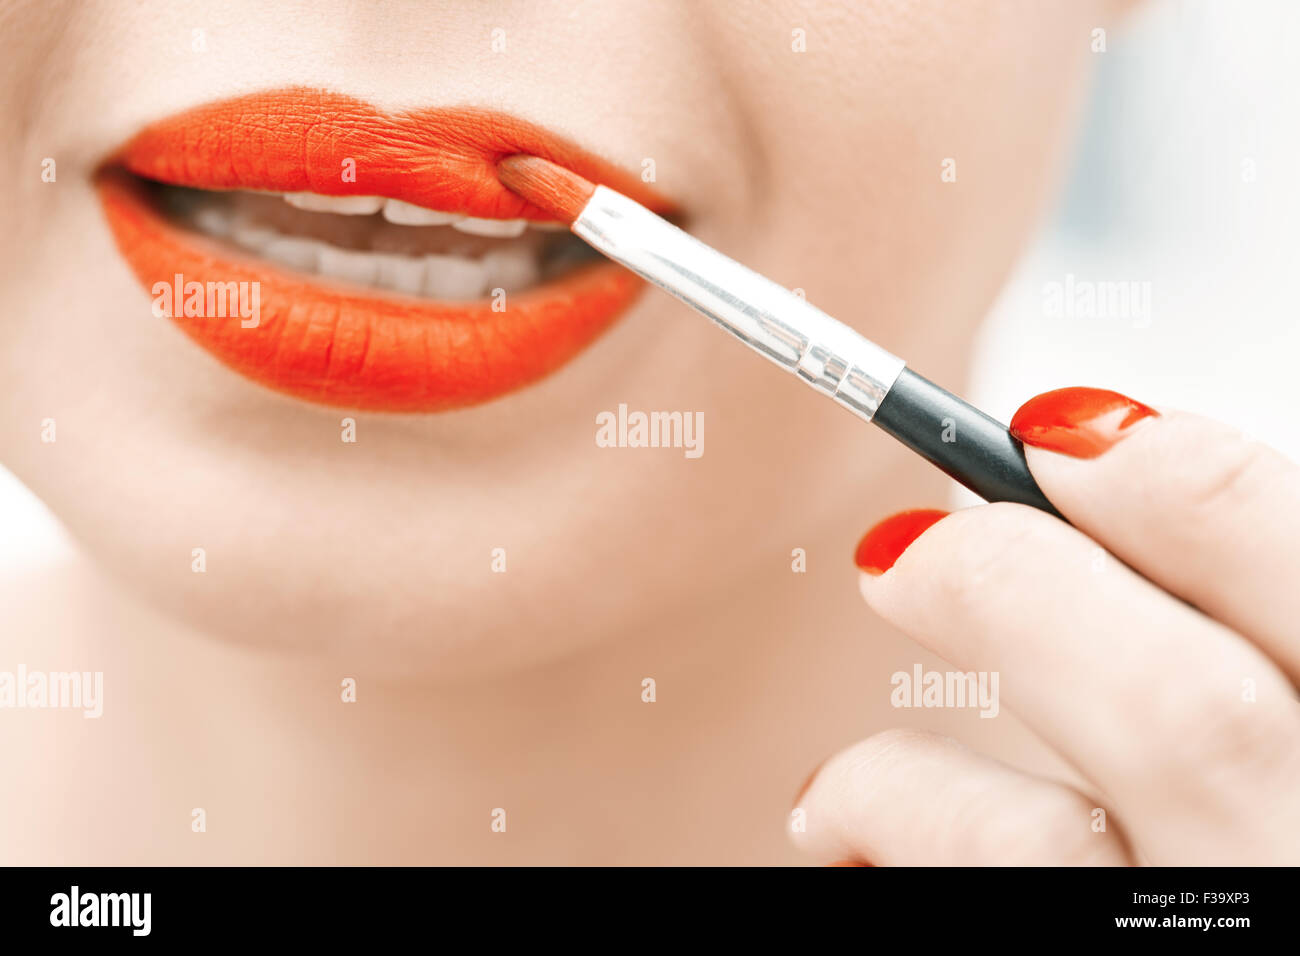 Woman applying red lipstick. Close-up view on face - Stock Image